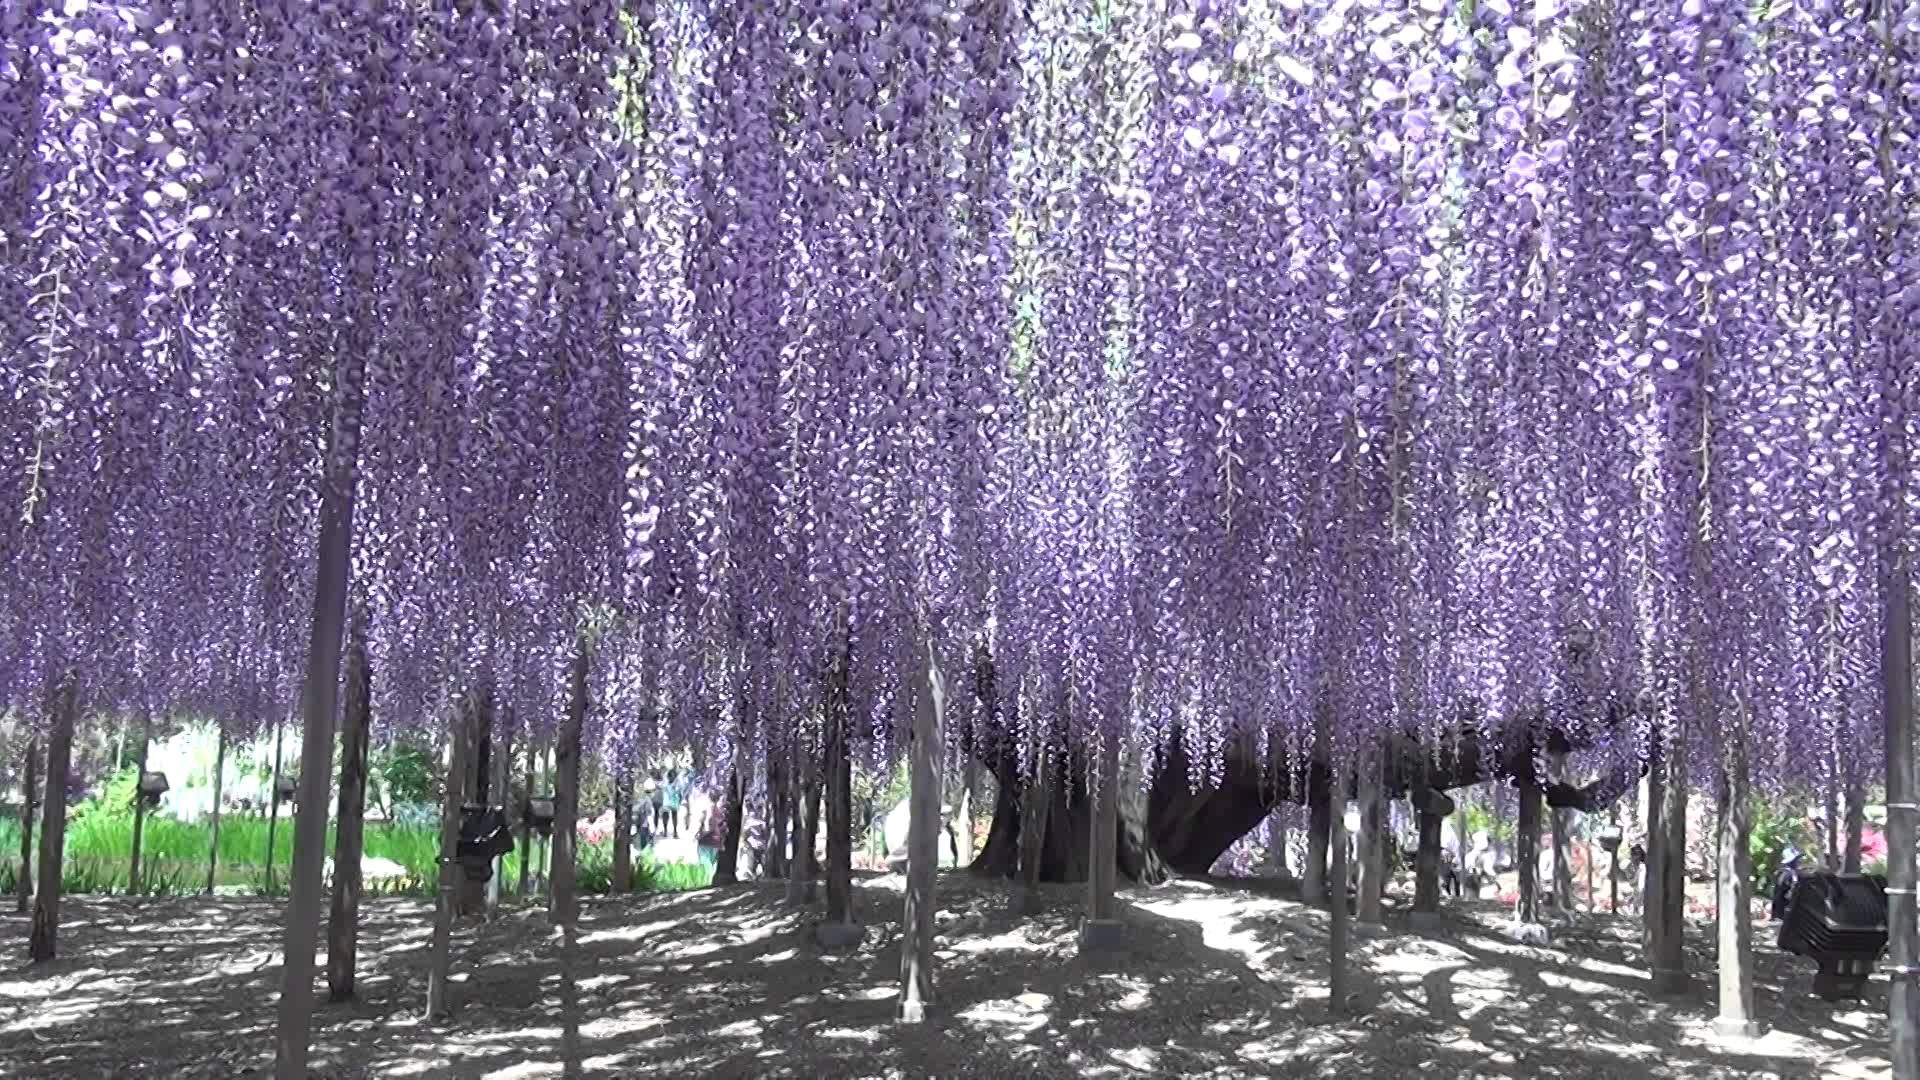 Birch Tree Fall Wallpaper Close Up Huge Wisteria In Japan Wallpapers High Quality Download Free